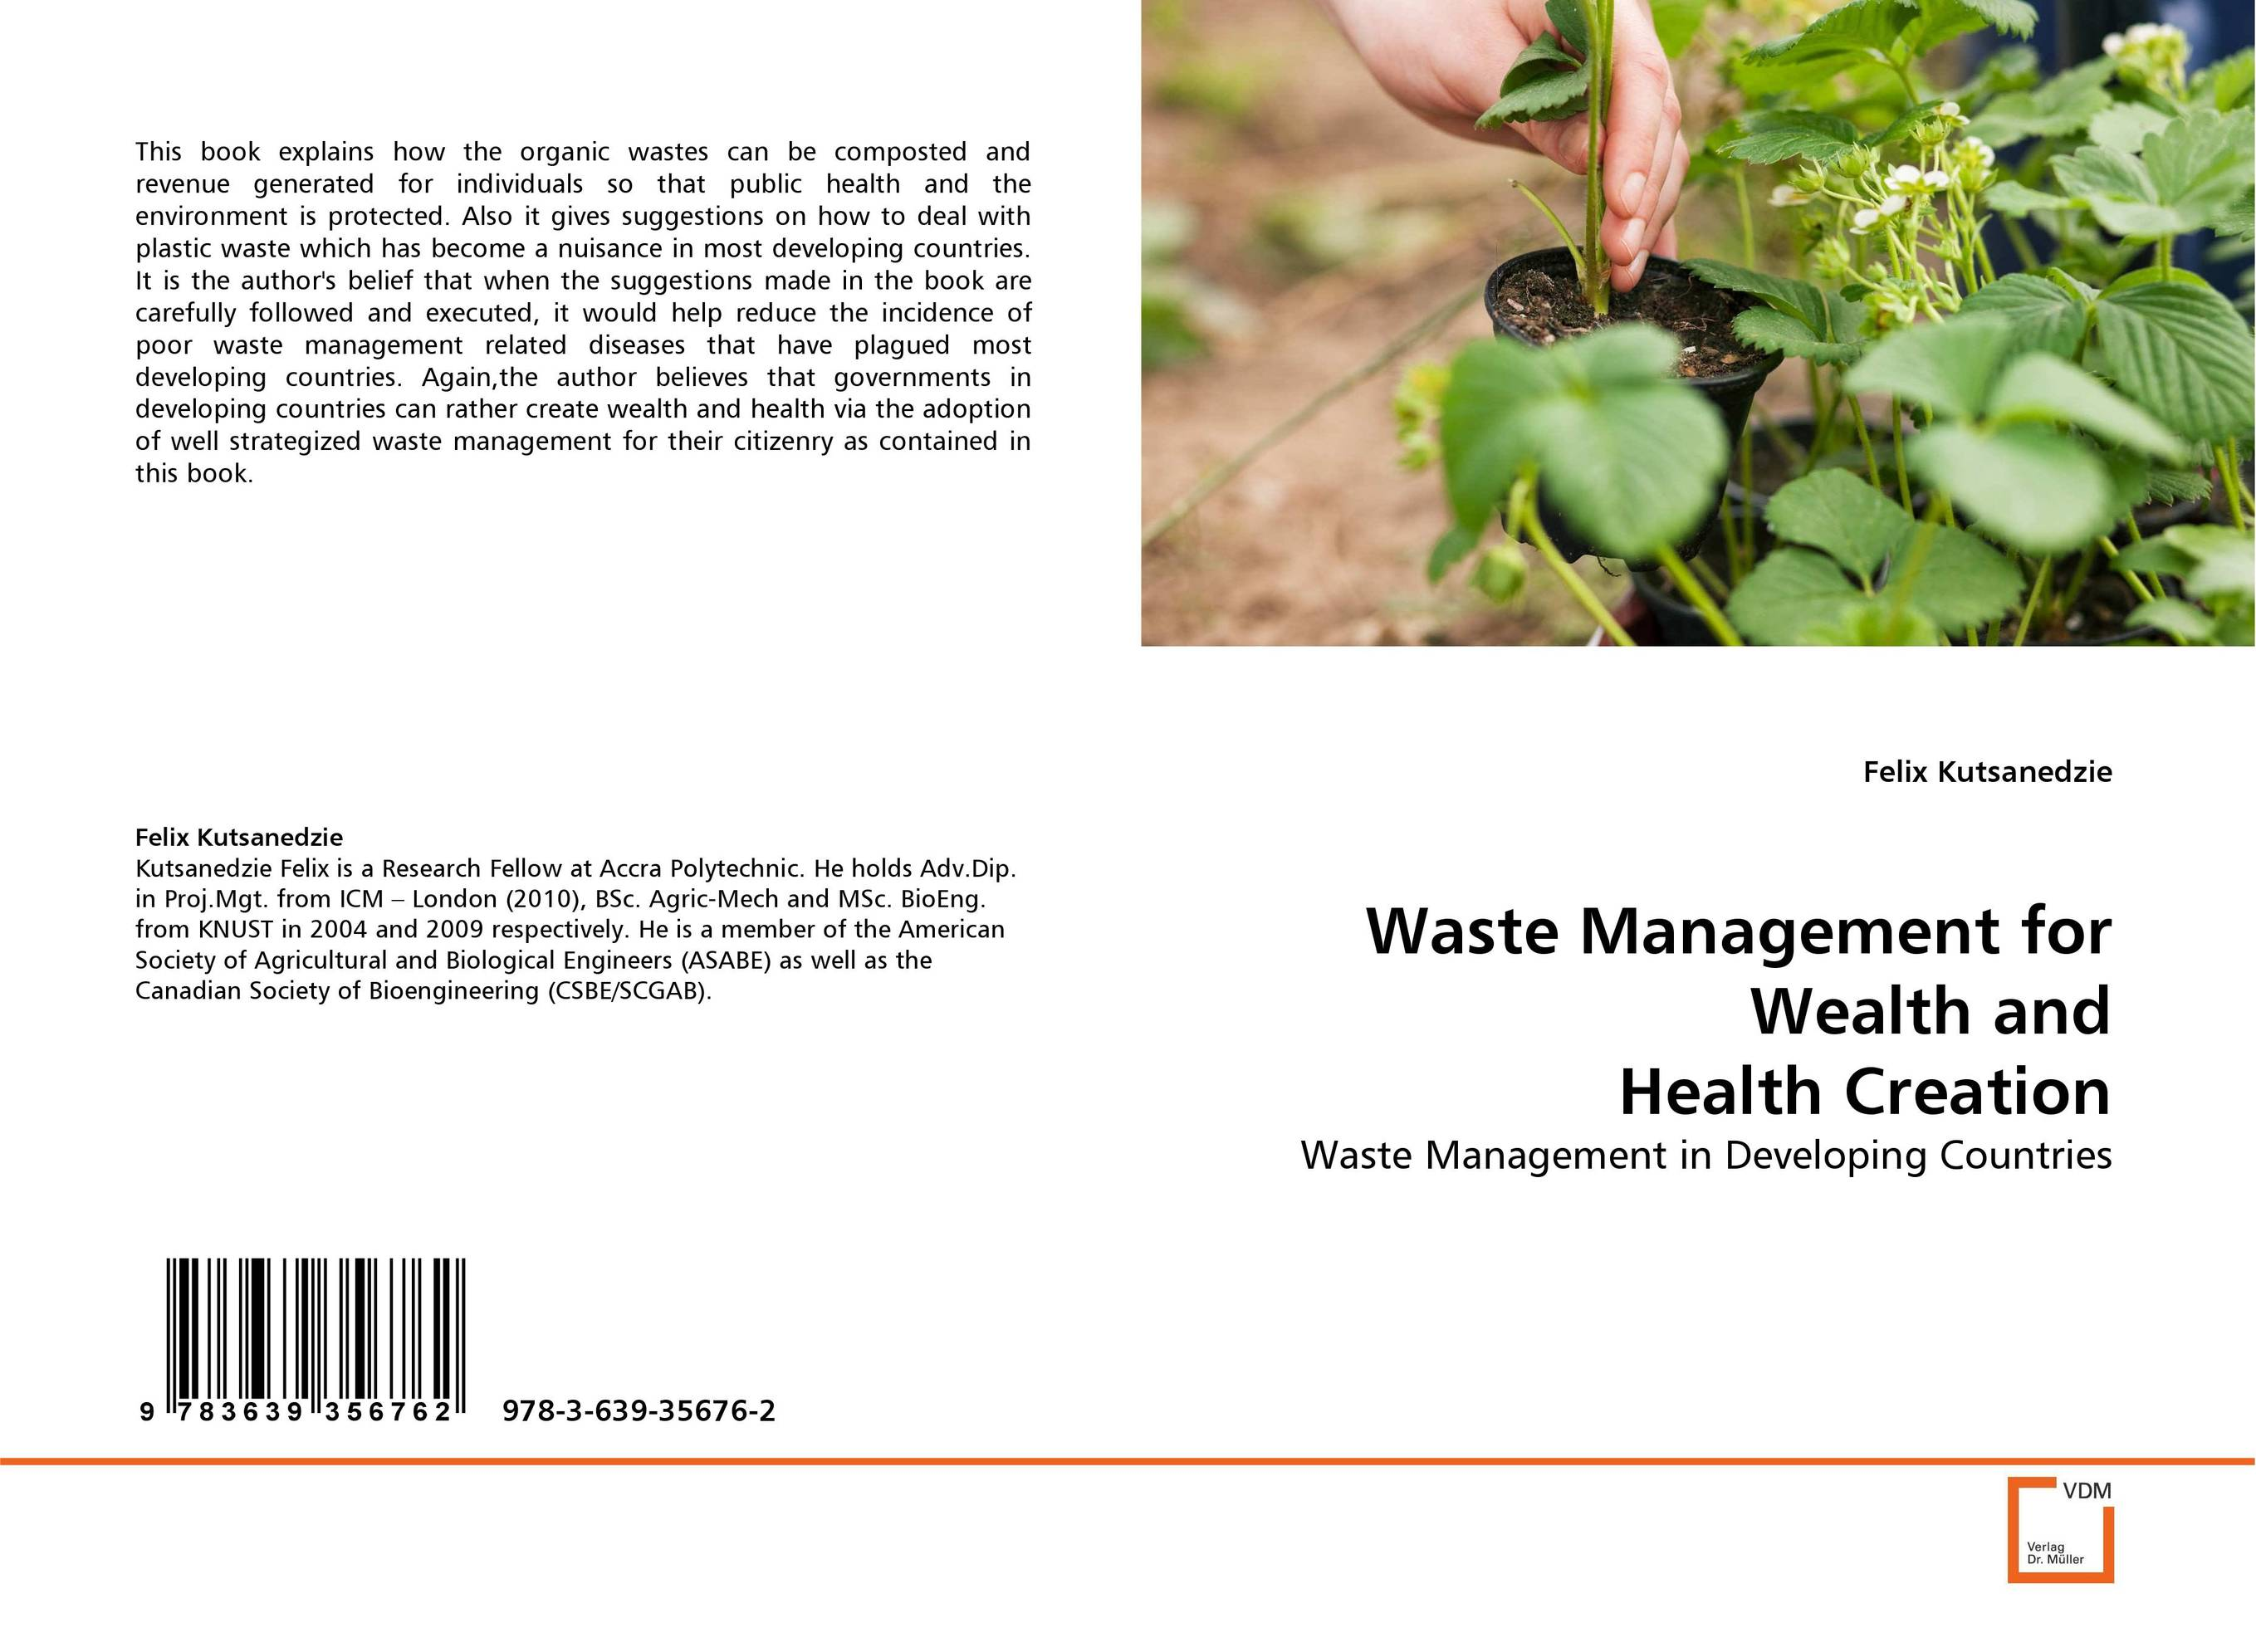 Waste Management for Wealth and Health Creation michael pompian m behavioral finance and wealth management how to build optimal portfolios that account for investor biases